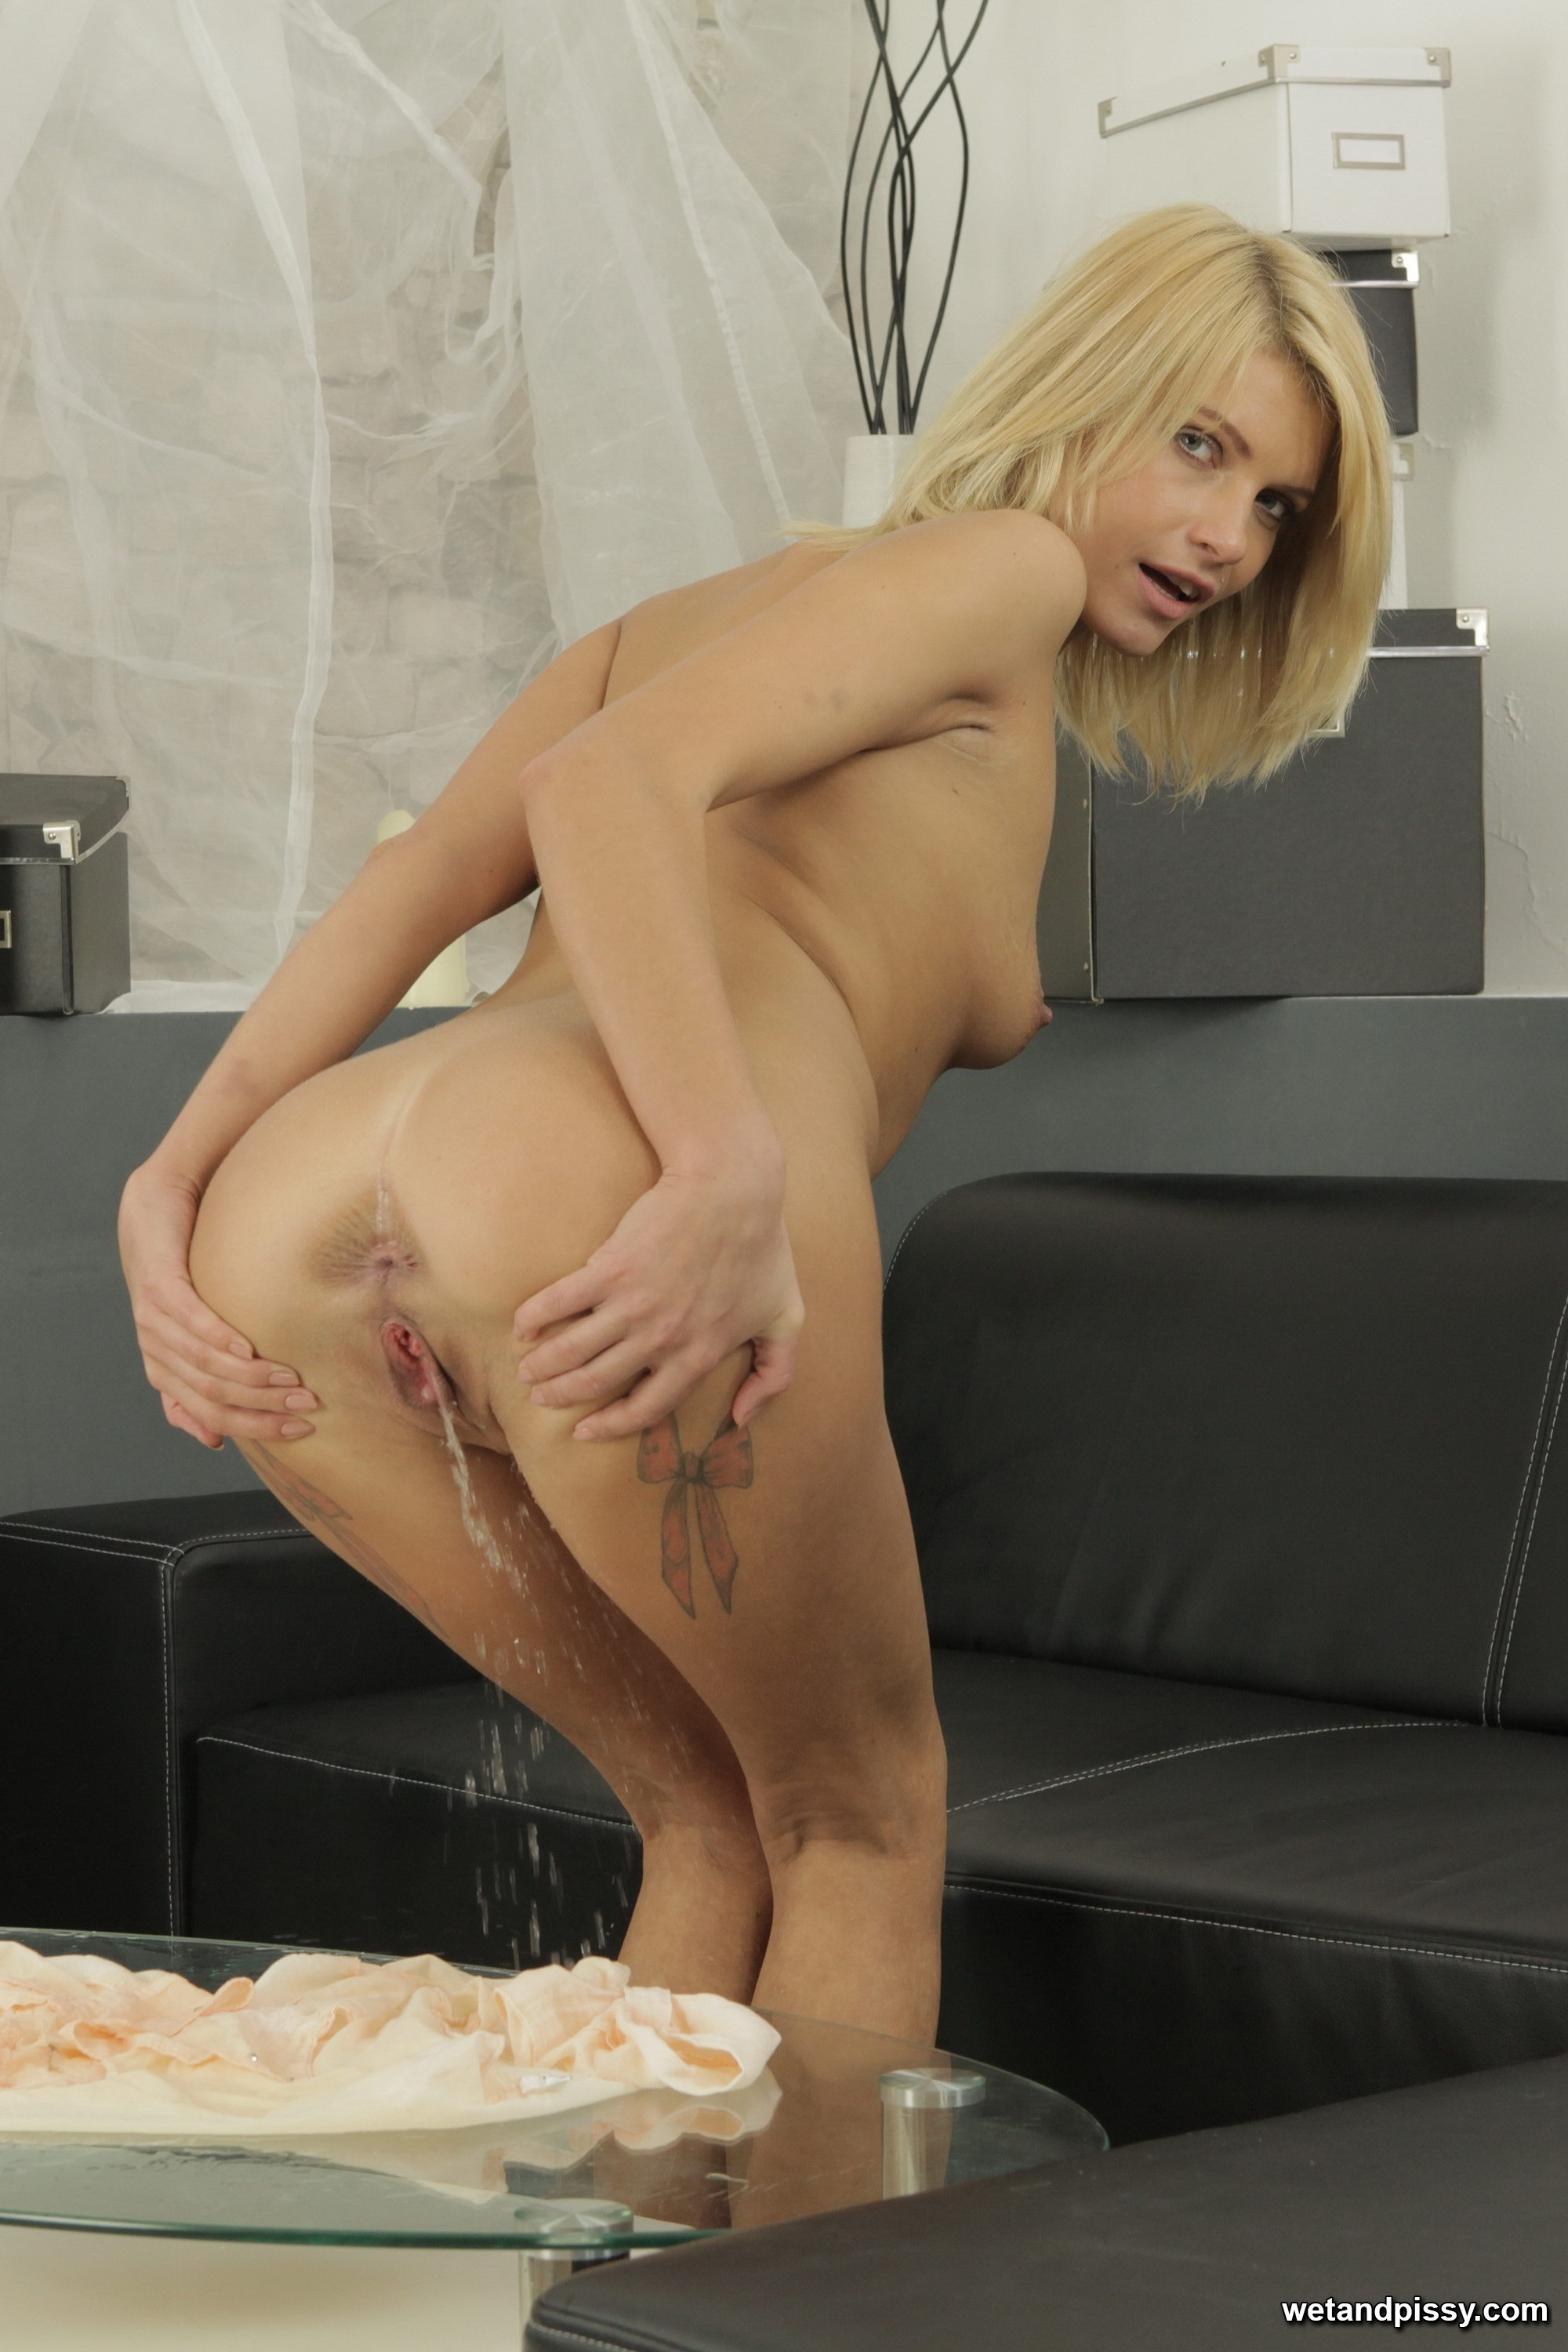 Peeing on her feet and then licking it